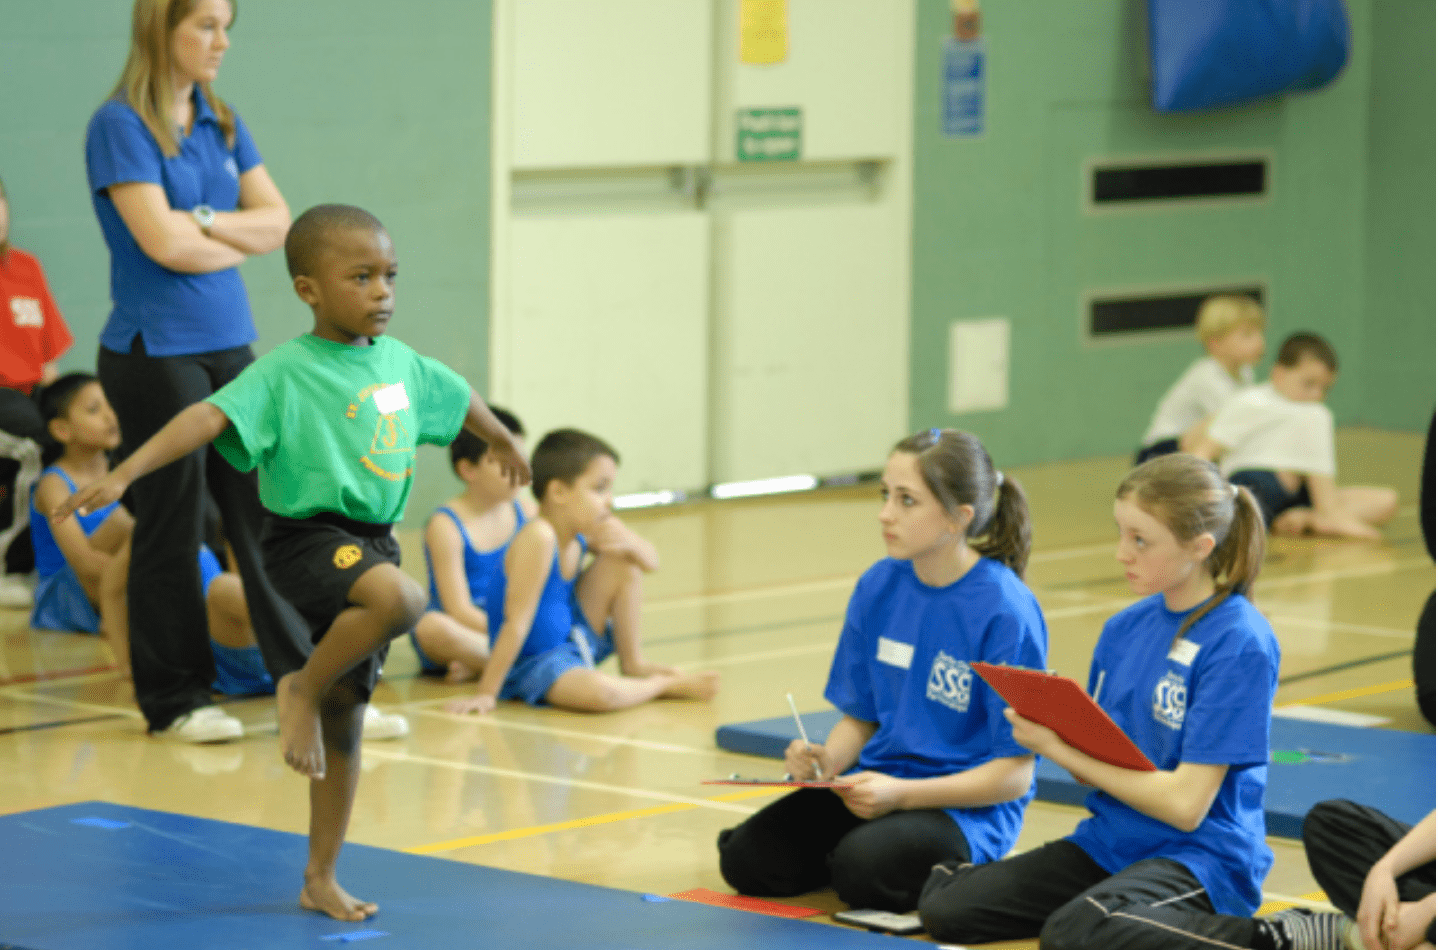 Young gymnastics being coached